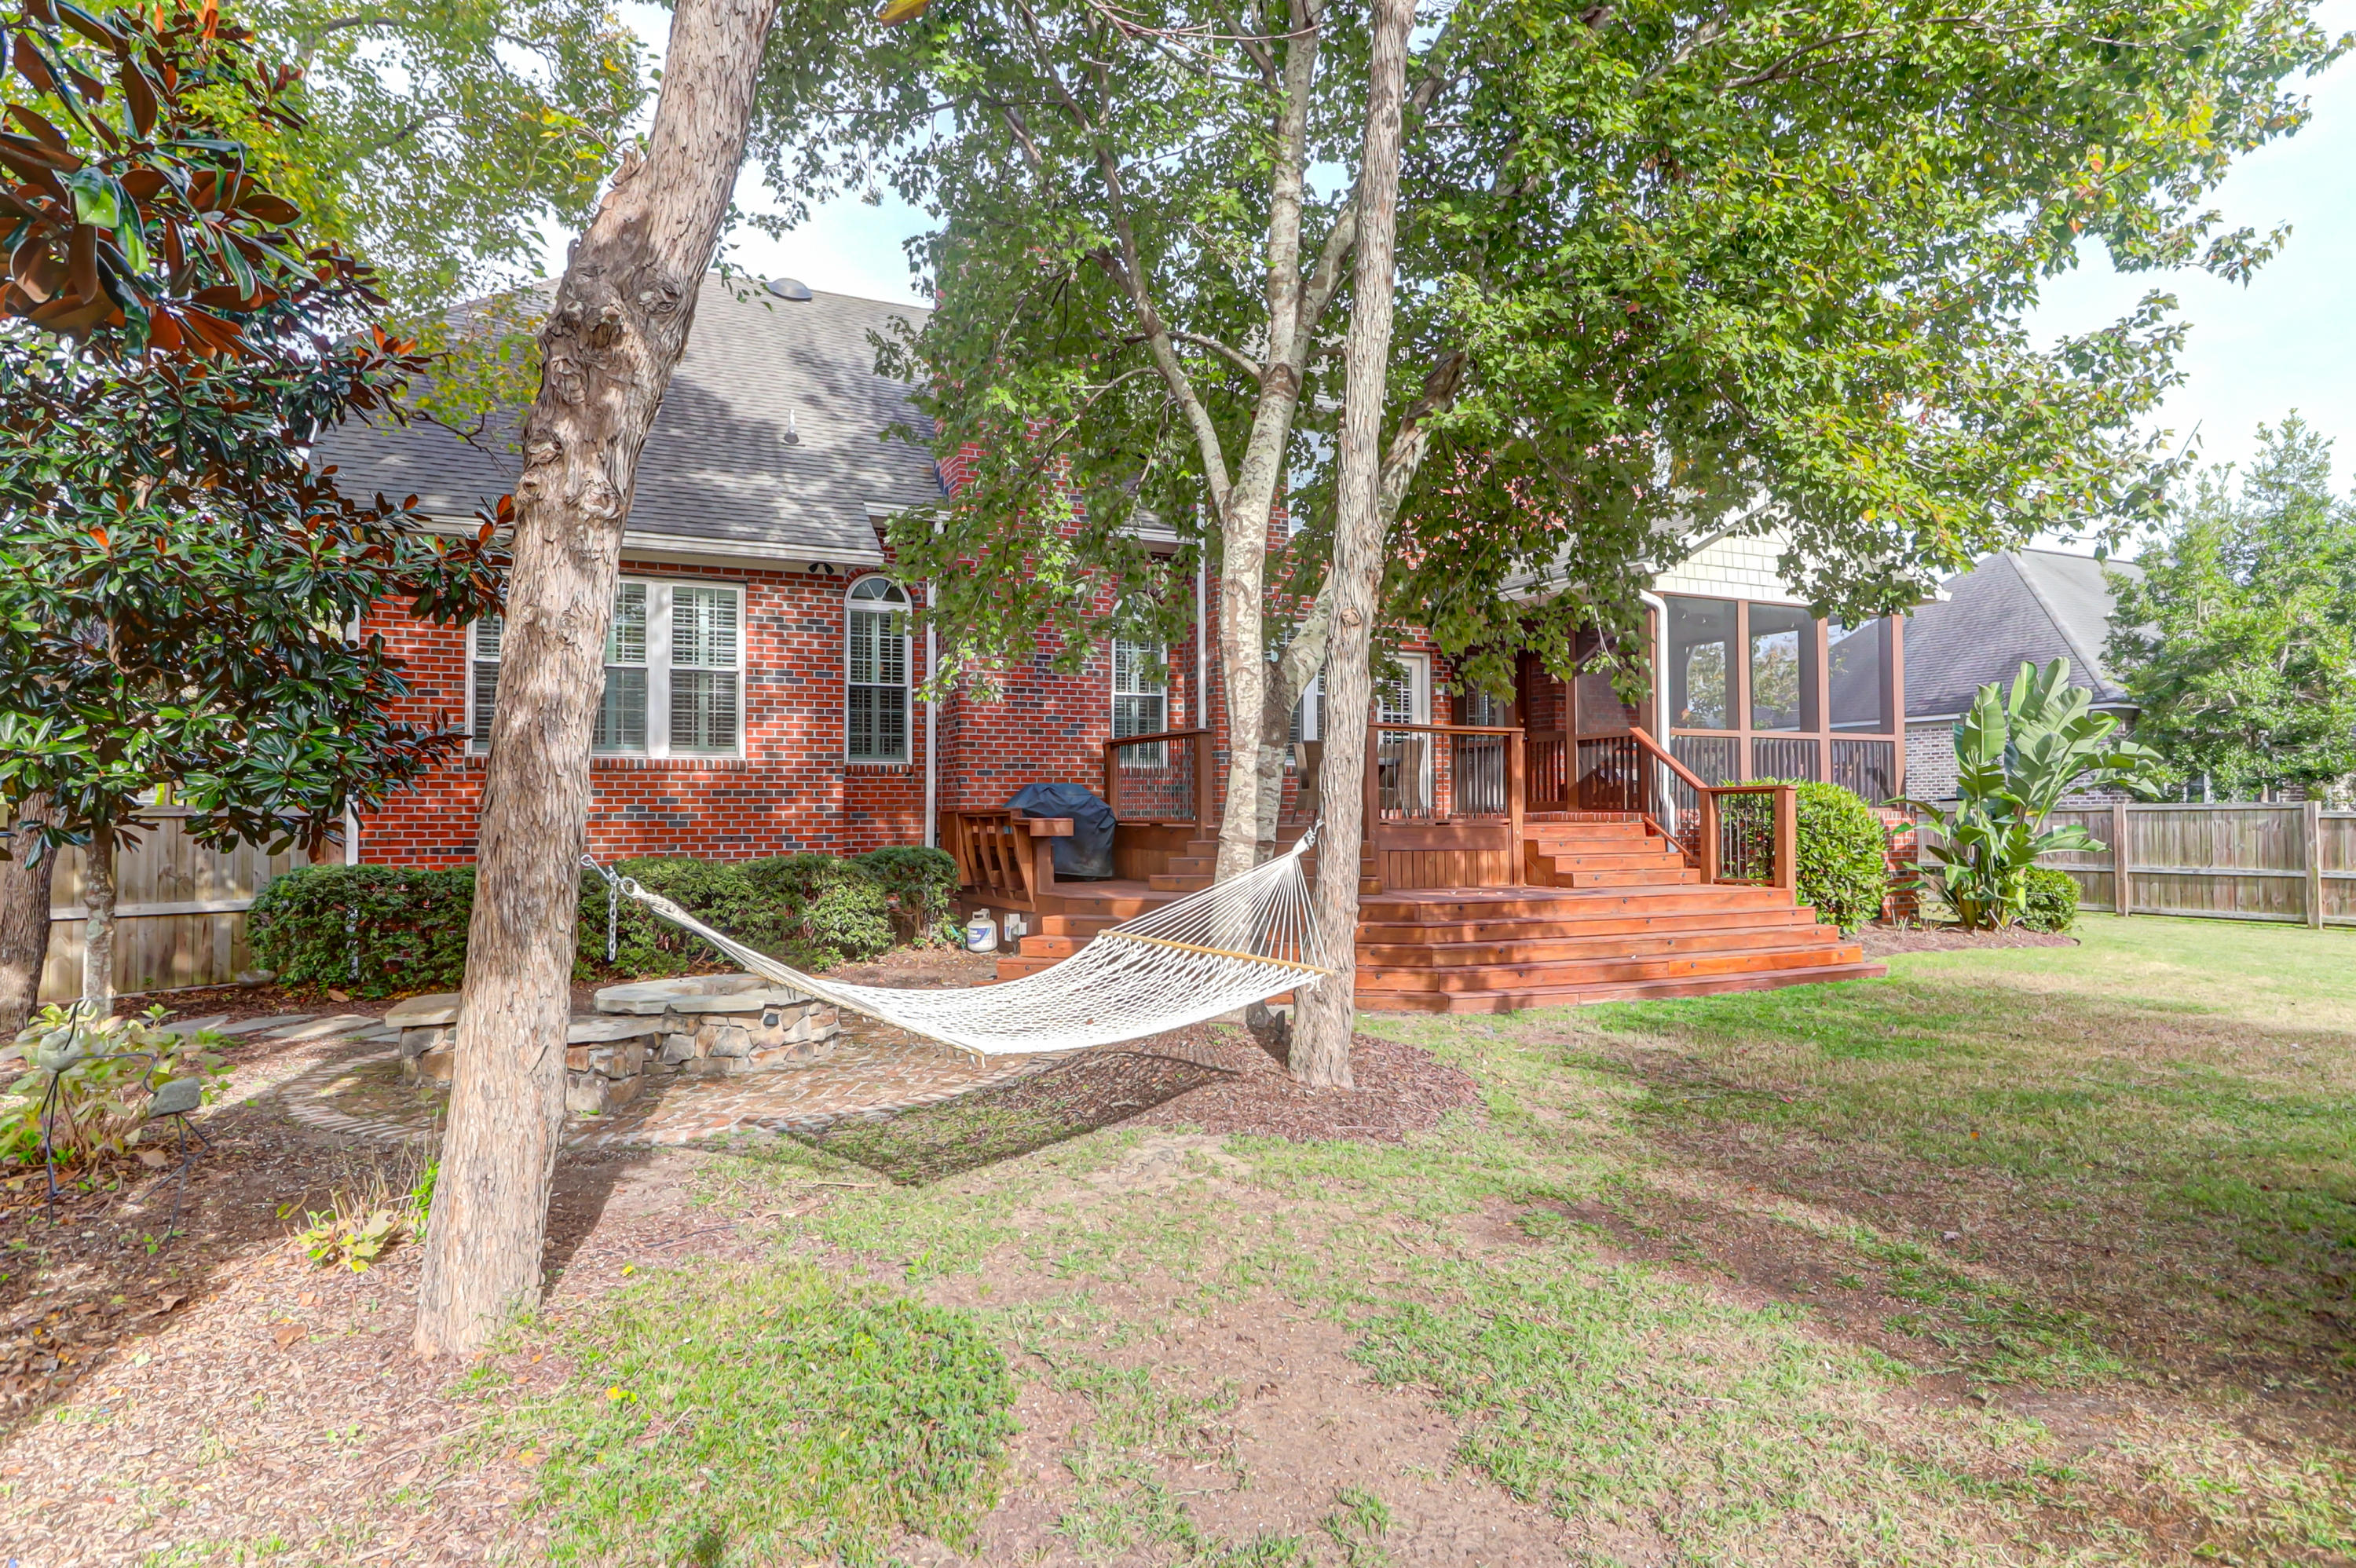 Woodward Pointe Homes For Sale - 657 White Chapel, Charleston, SC - 23